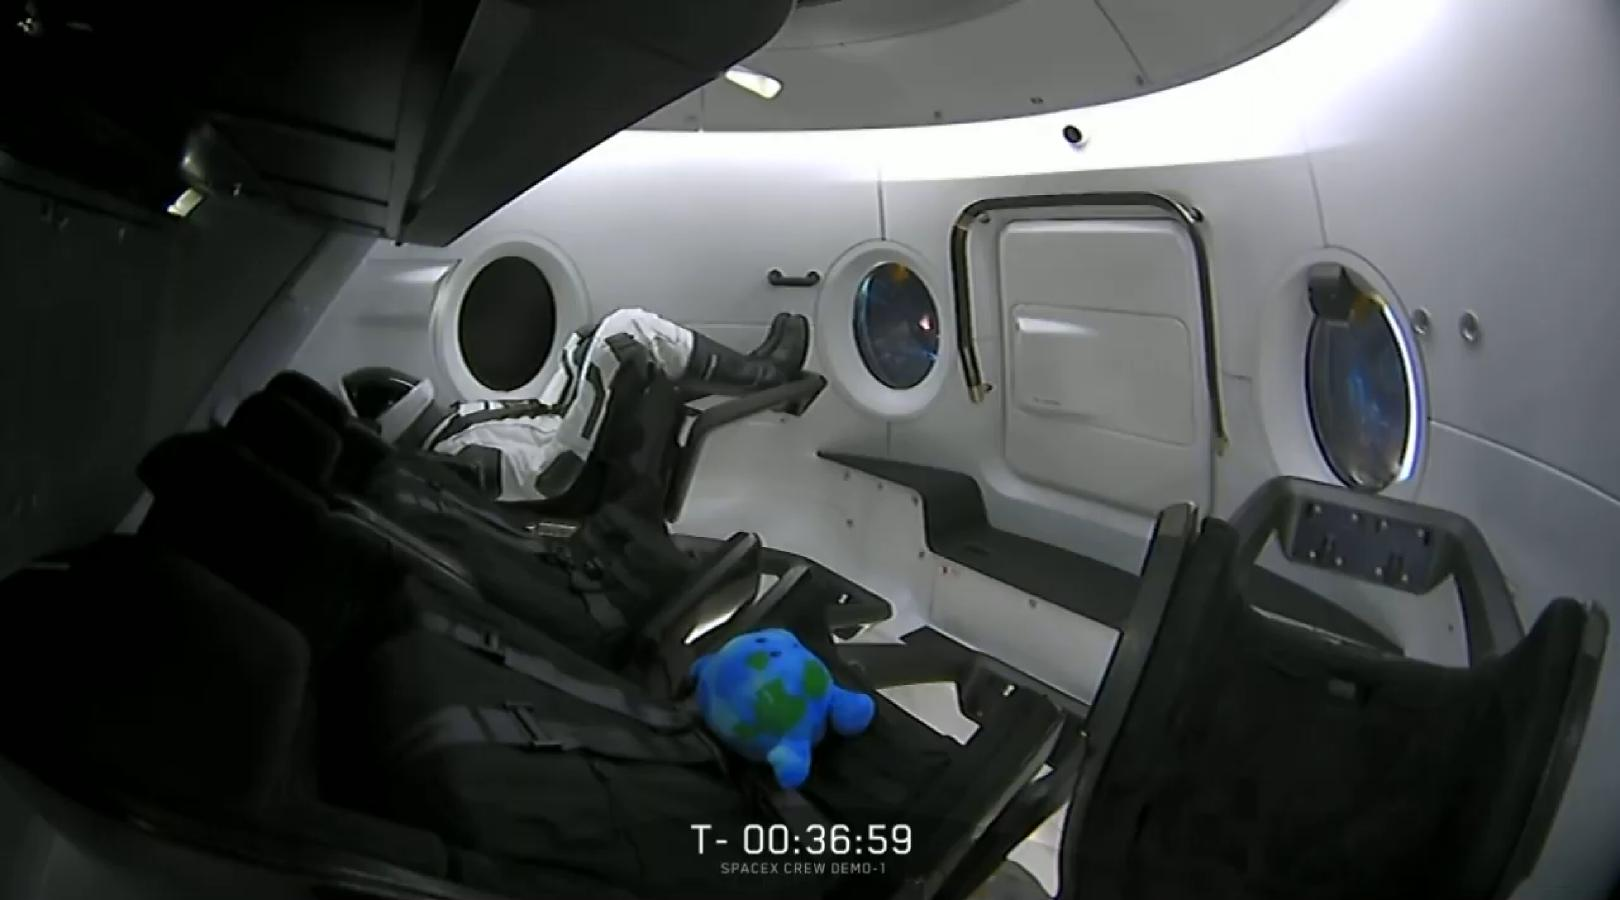 Earth ball and Ripley (SpaceX) 1